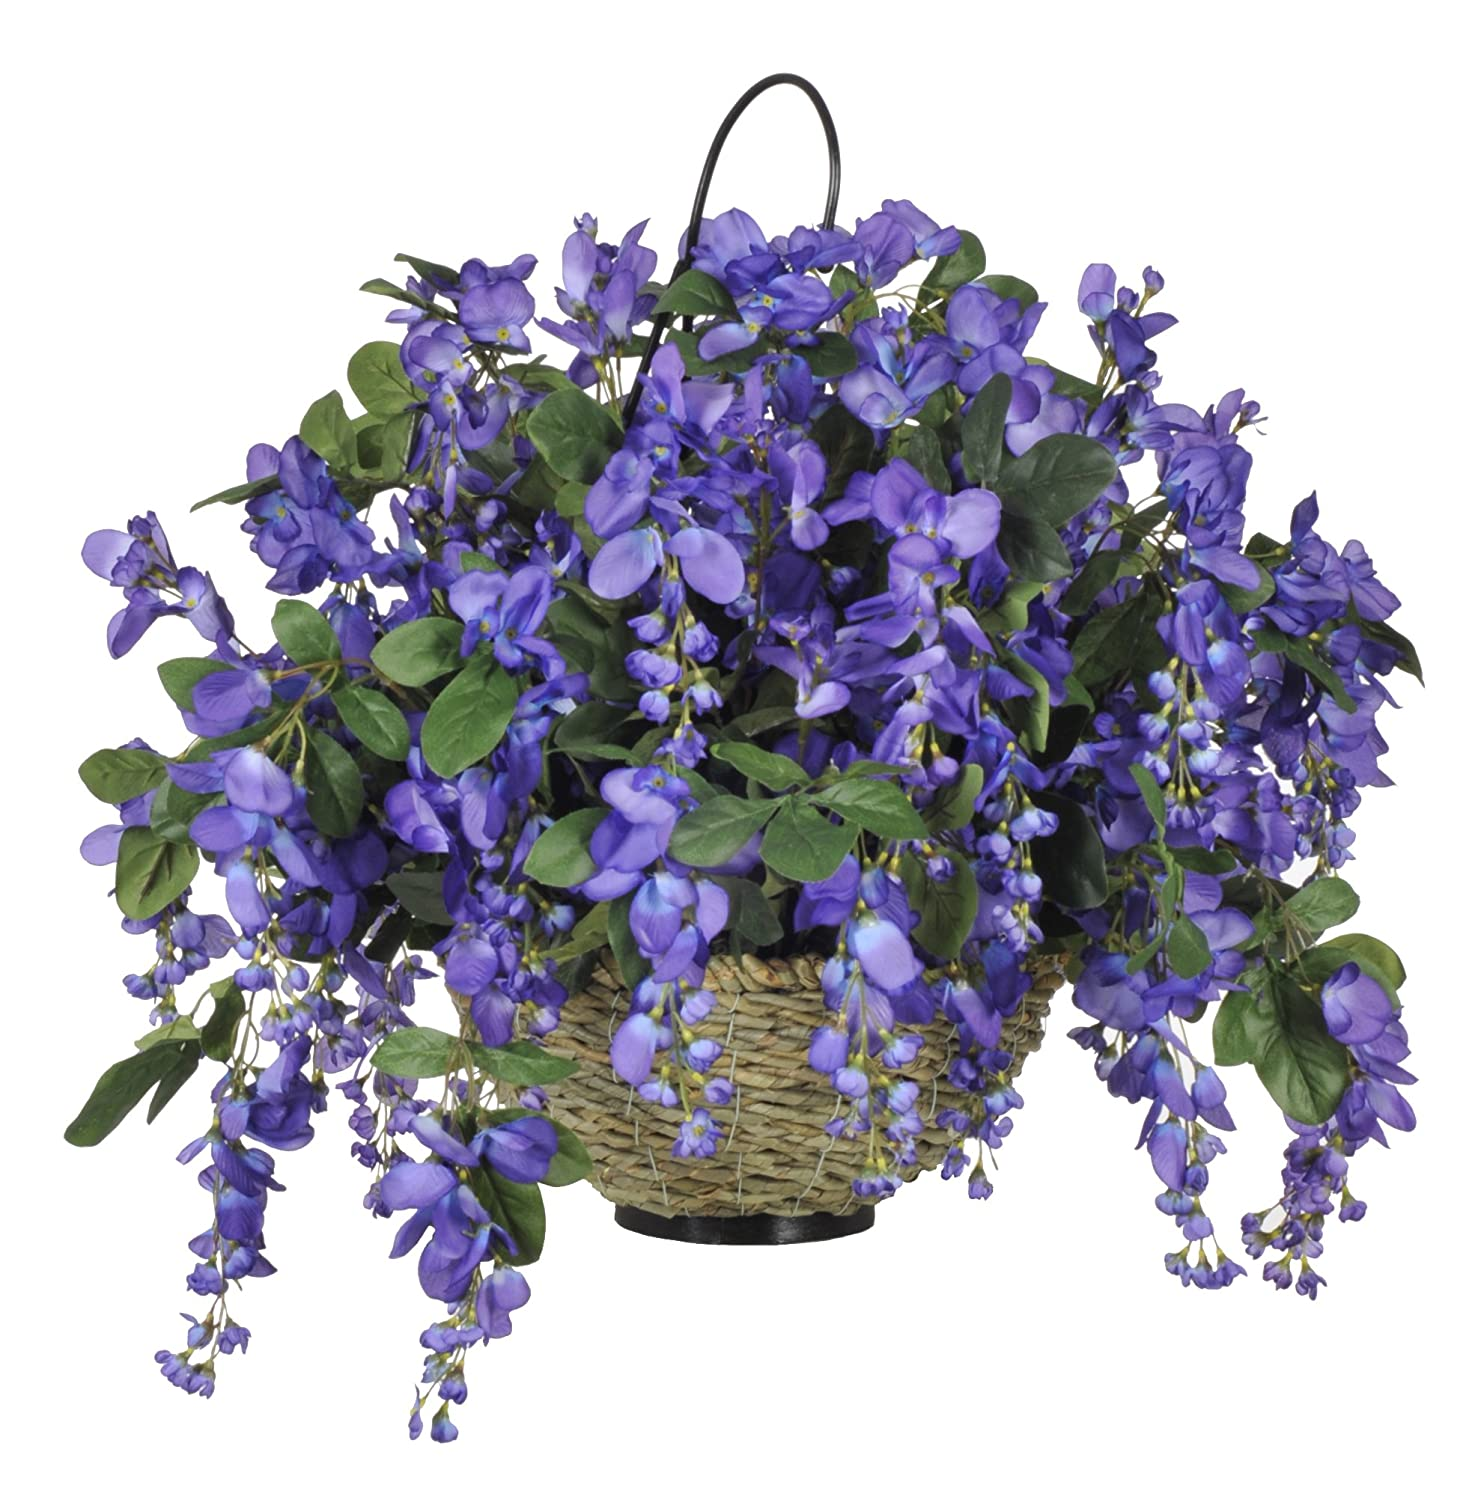 House of Silk Flowers Wisteria Hanging Basket, Violet/Blue